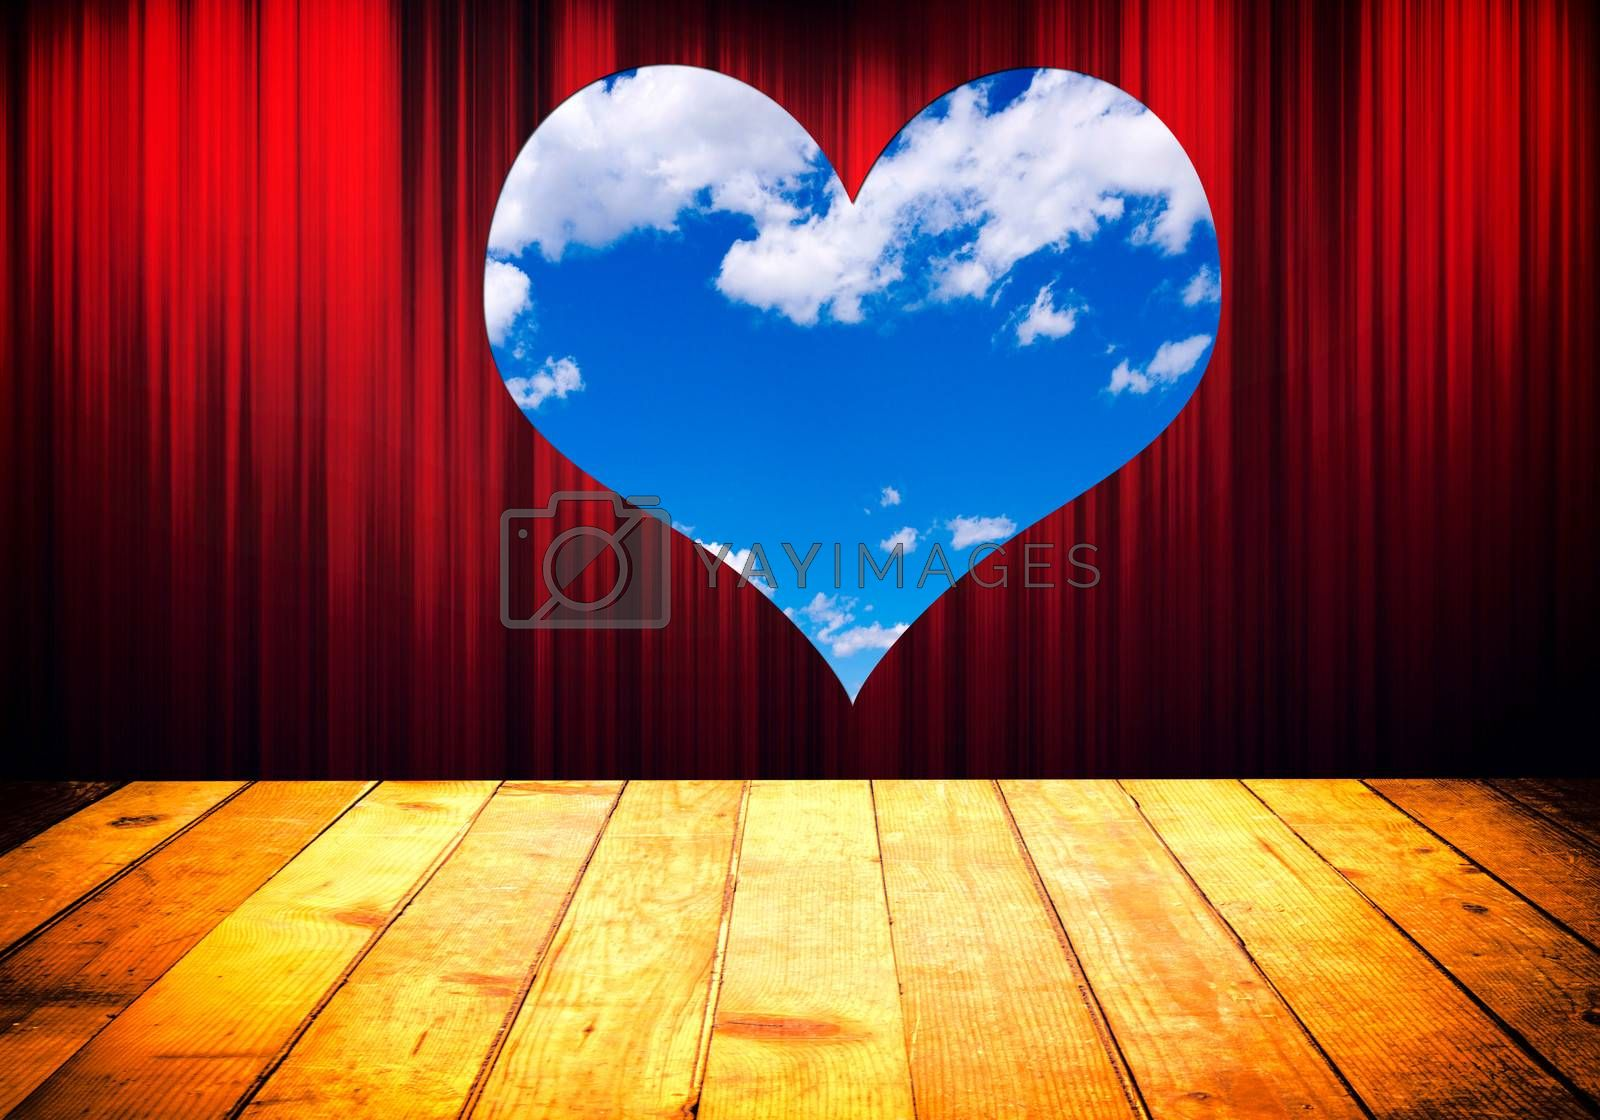 Theater stage with red curtain and heart shape window